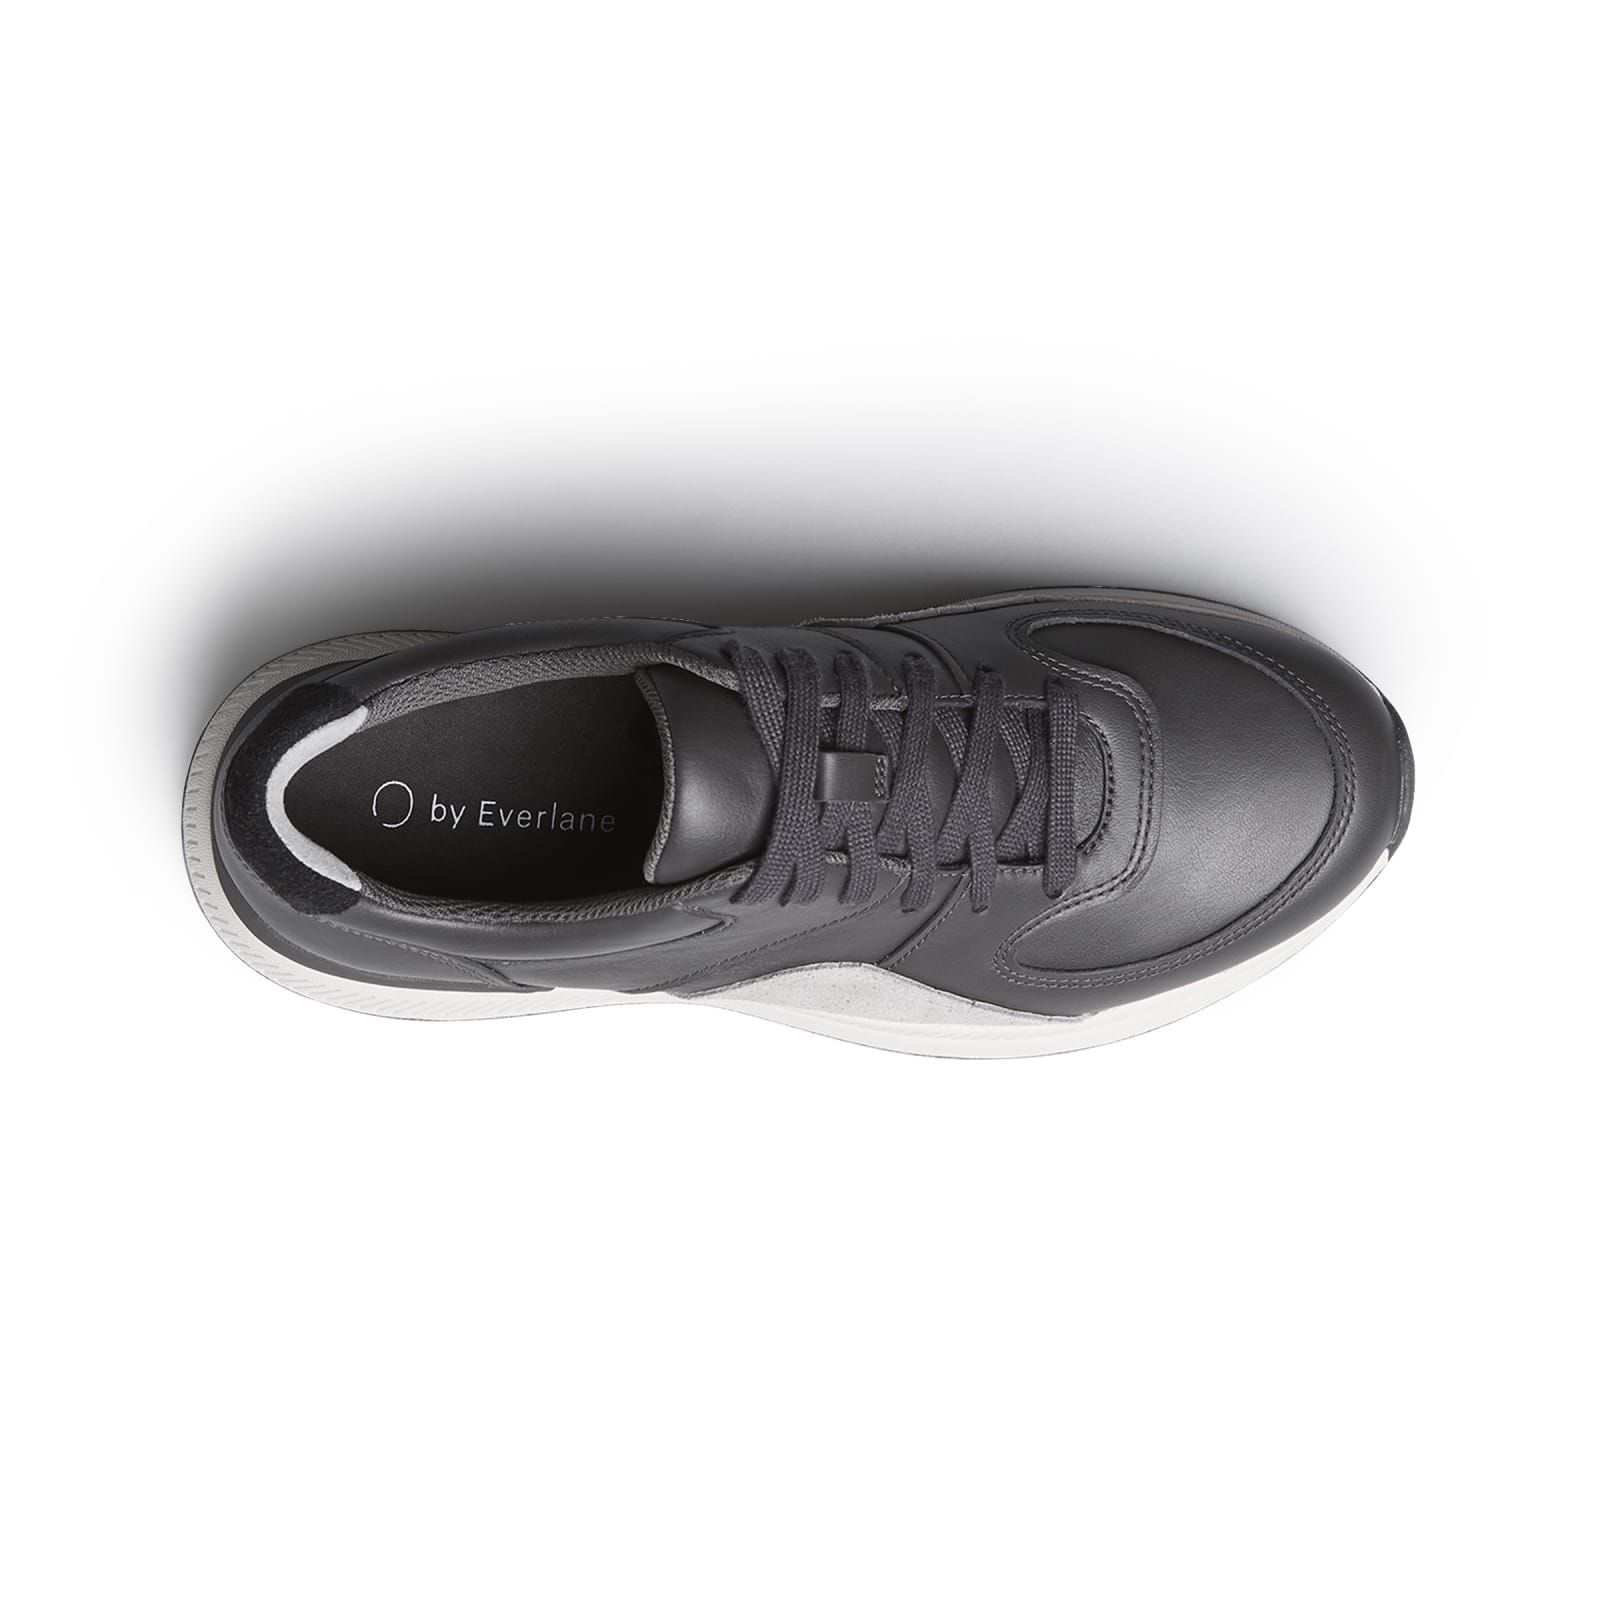 Women S Trainer By Everlane In Raven Leather Shoes Woman Best